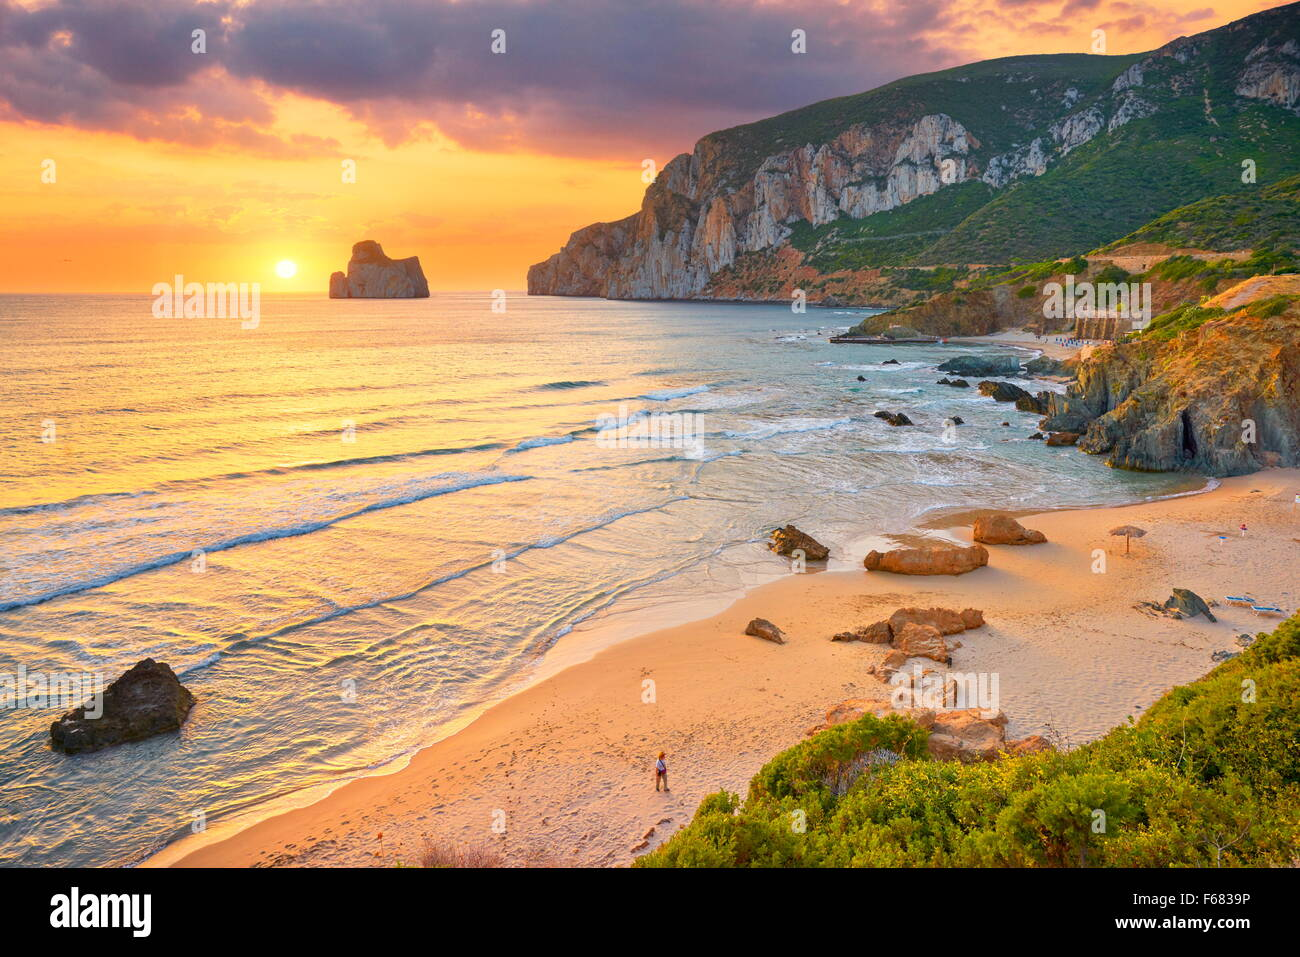 Pan di Zucchero at sunset time, Masua Village Beach, Sardinia Island, Italy - Stock Image